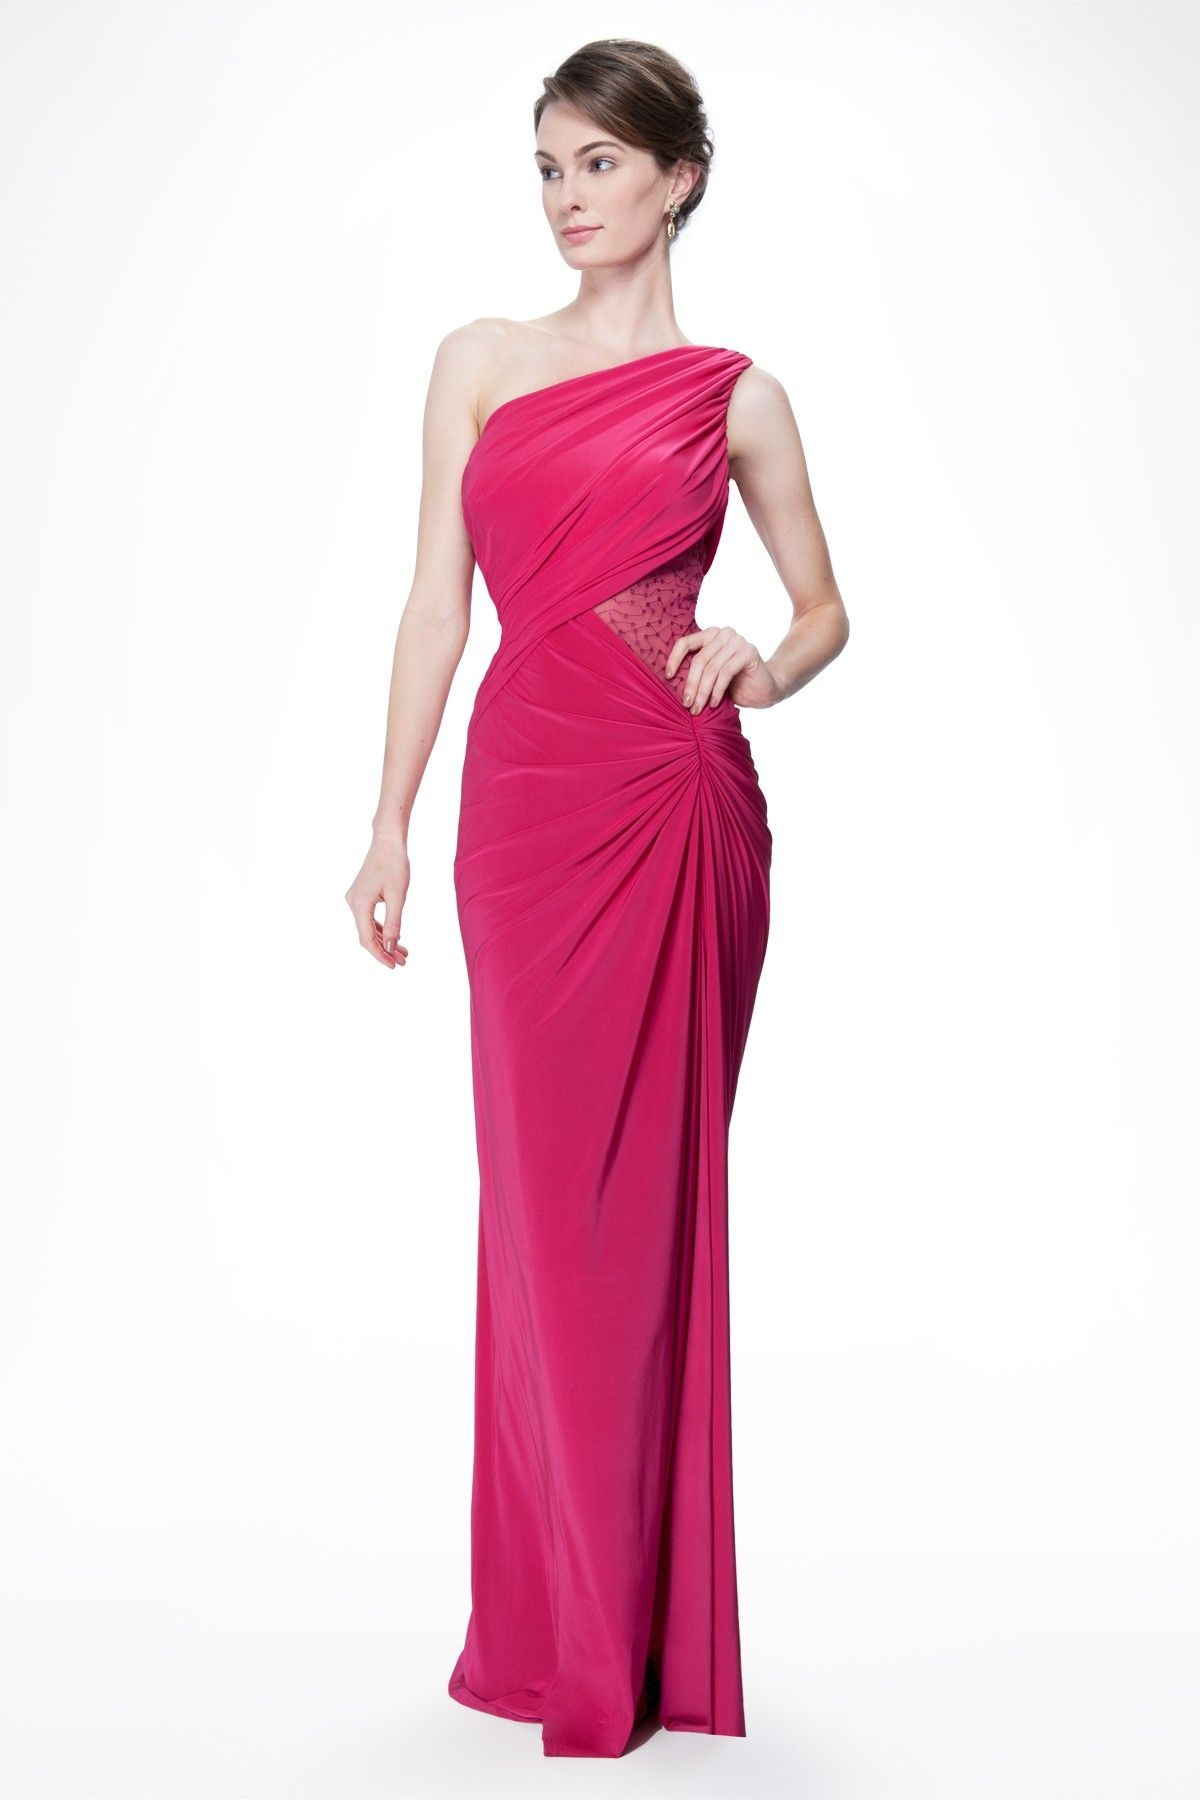 One Shoulder Draped Jersey and Sequin Gown in Hot Pink - Prom ...